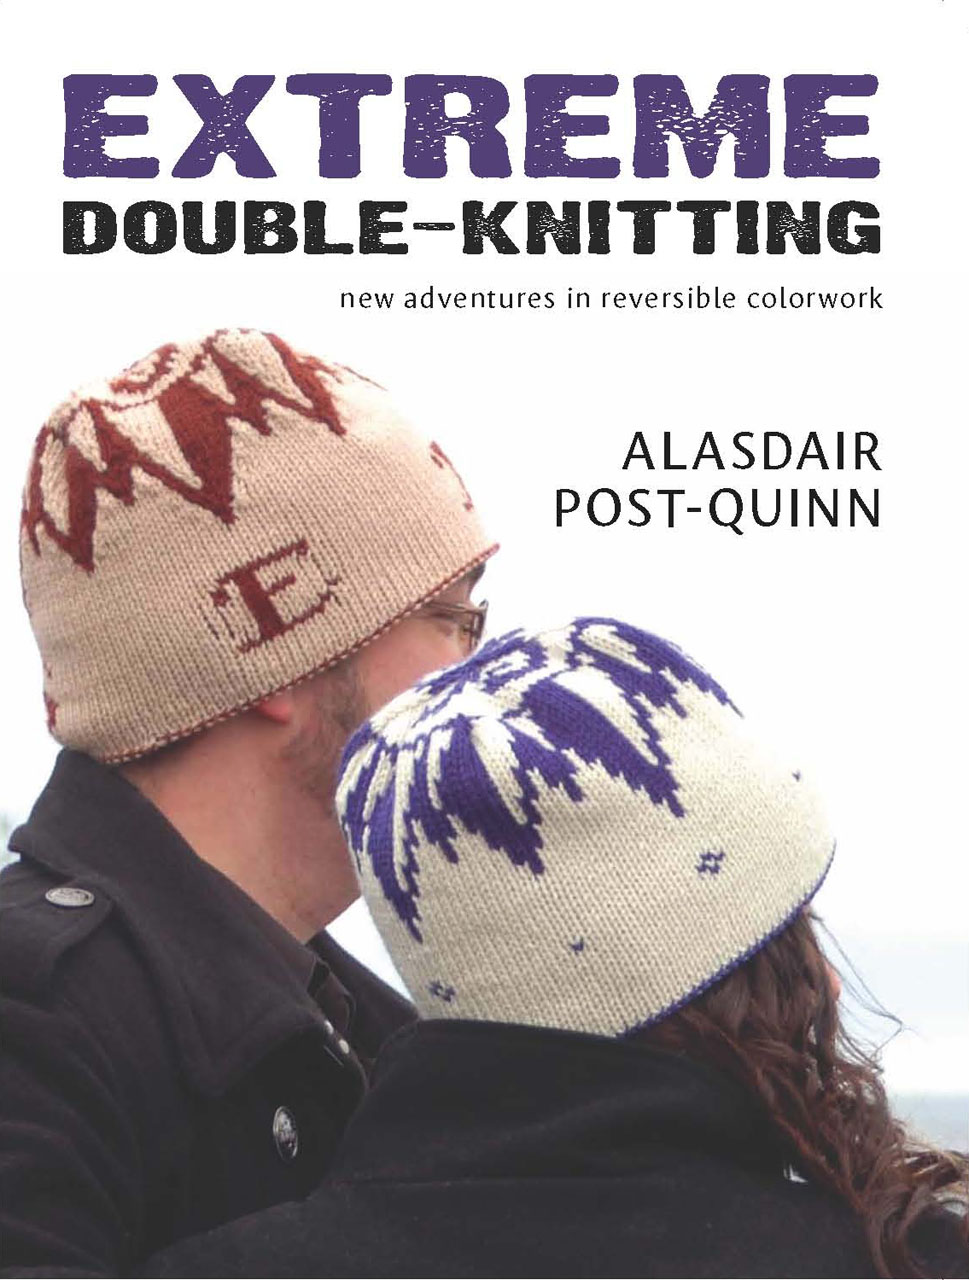 Knitting Embroidery Lessons : Knitting and embroidery classes free patterns